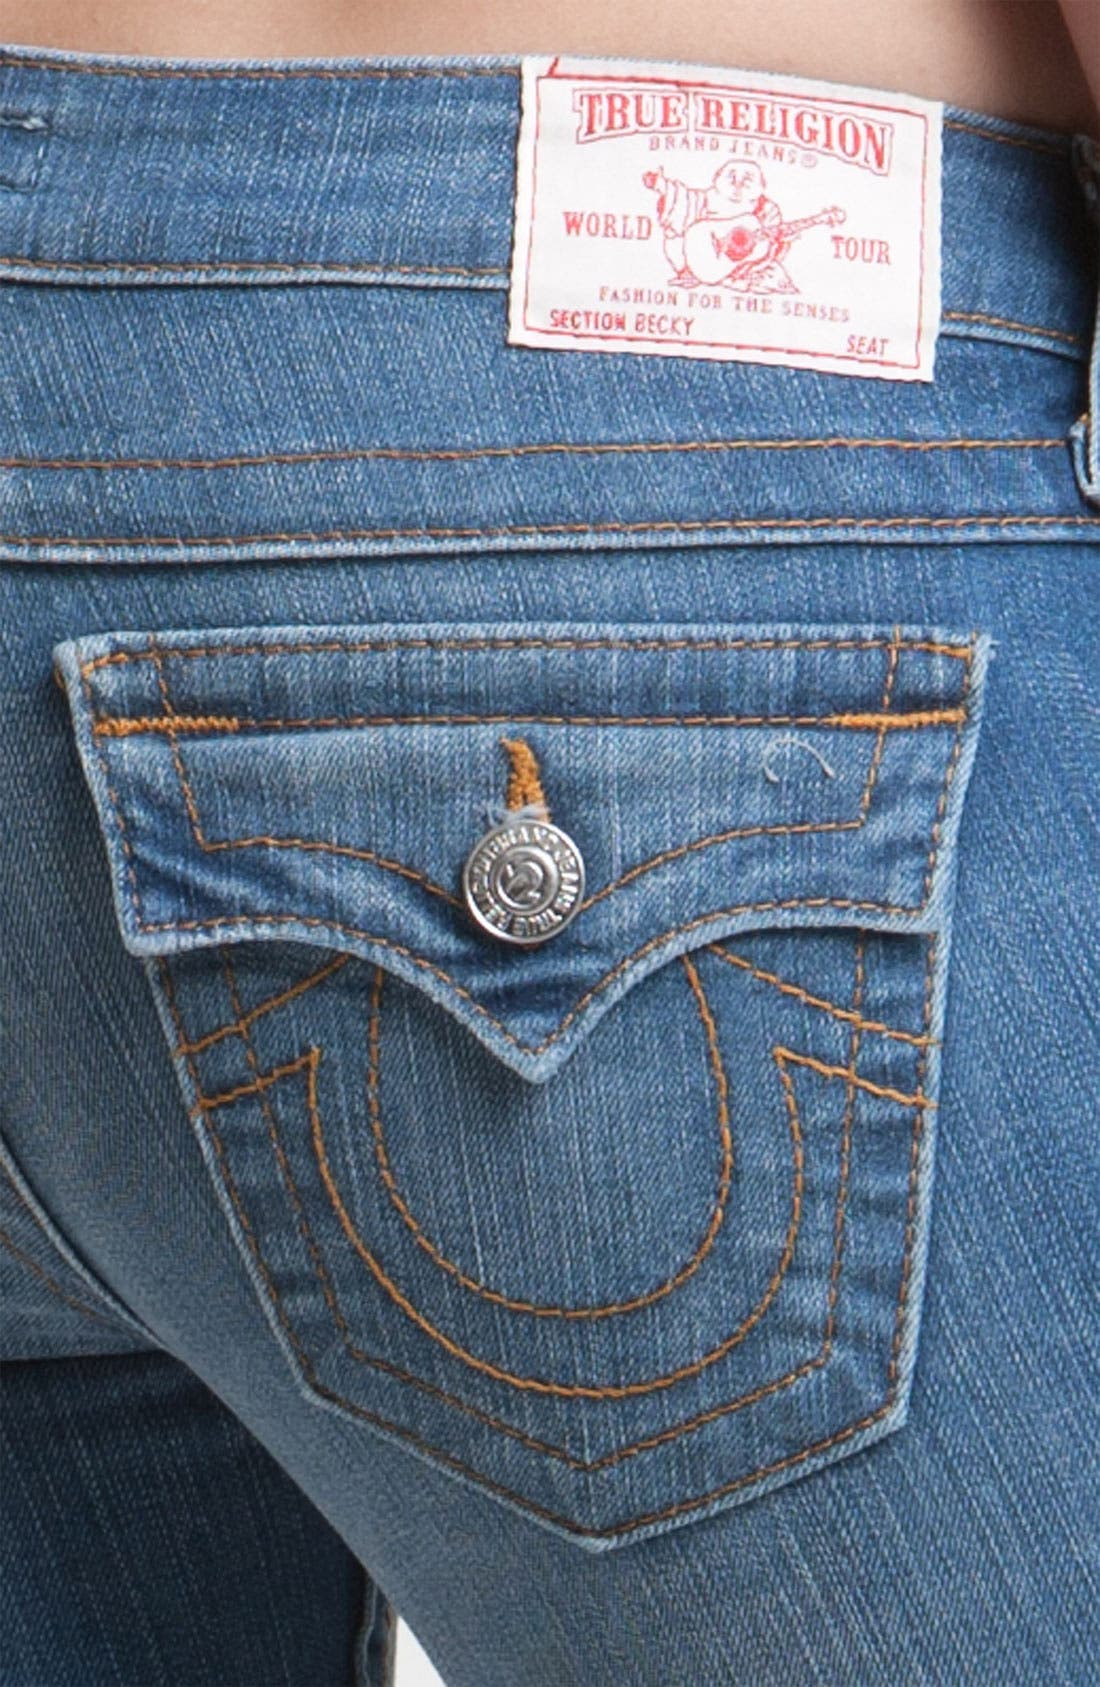 Alternate Image 3  - True Religion Brand Jeans 'Becky' Bootcut Jeans (Short Fuse)(Petite)